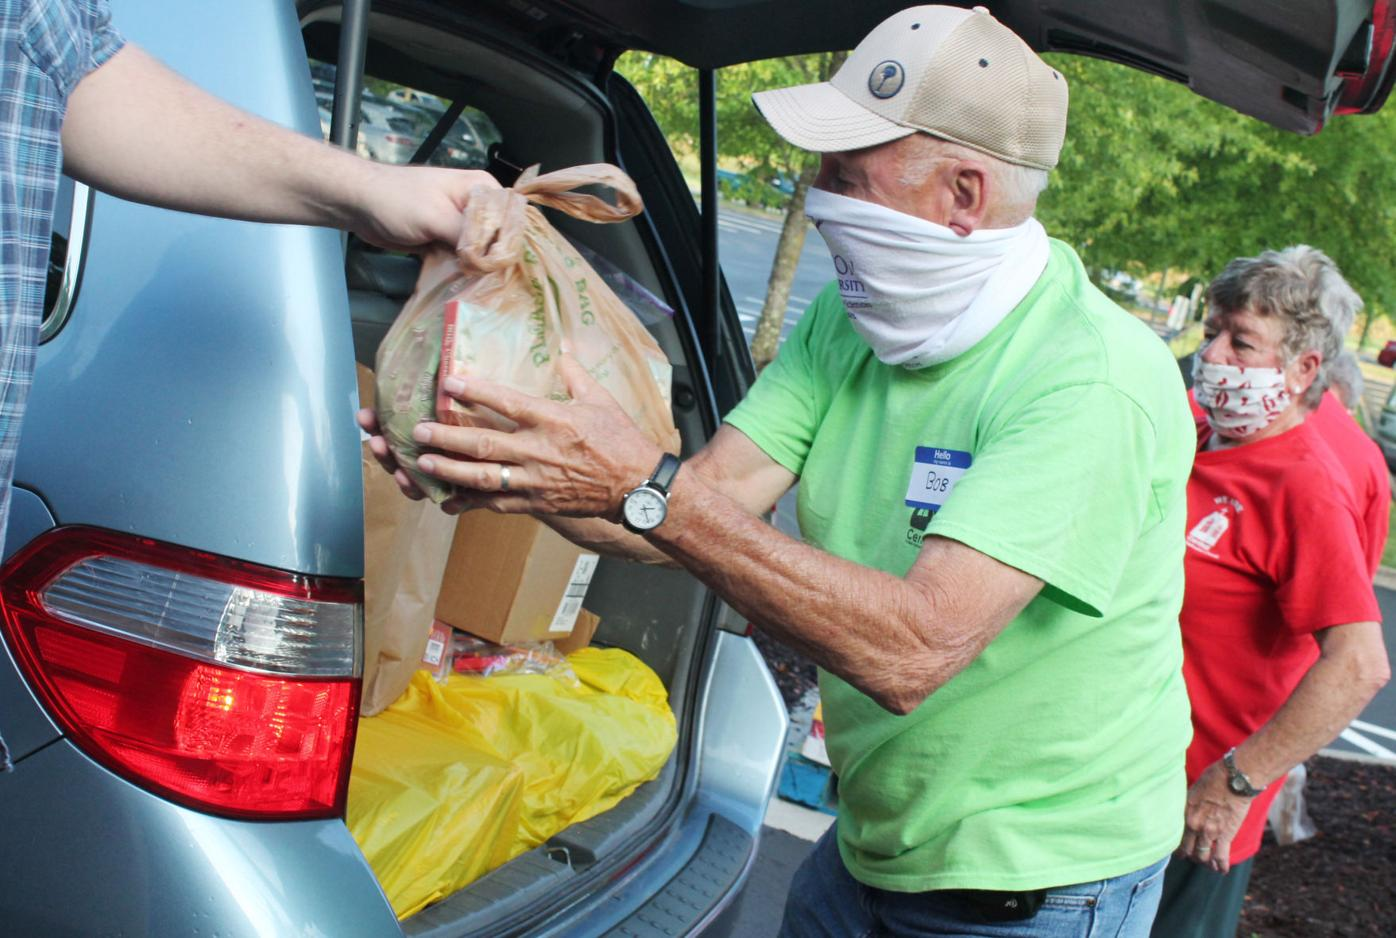 Churches host mobile food pantry